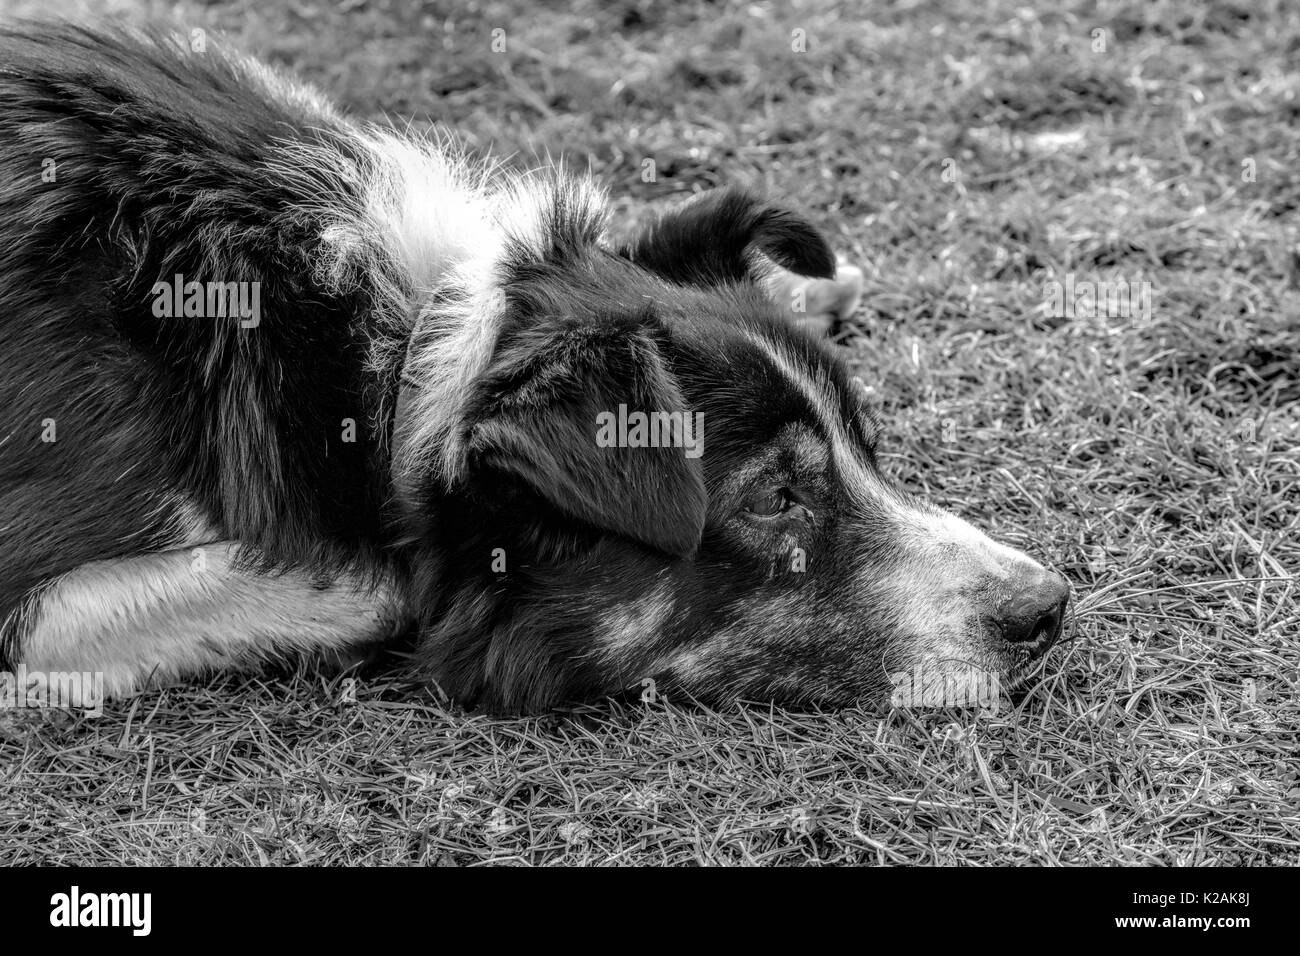 A Border Collie ( Canis lupus familiaris ) awaiting commands during a sheepdog demonstration on Leault Farm, Kincraig, Scotland, United Kingdom. - Stock Image